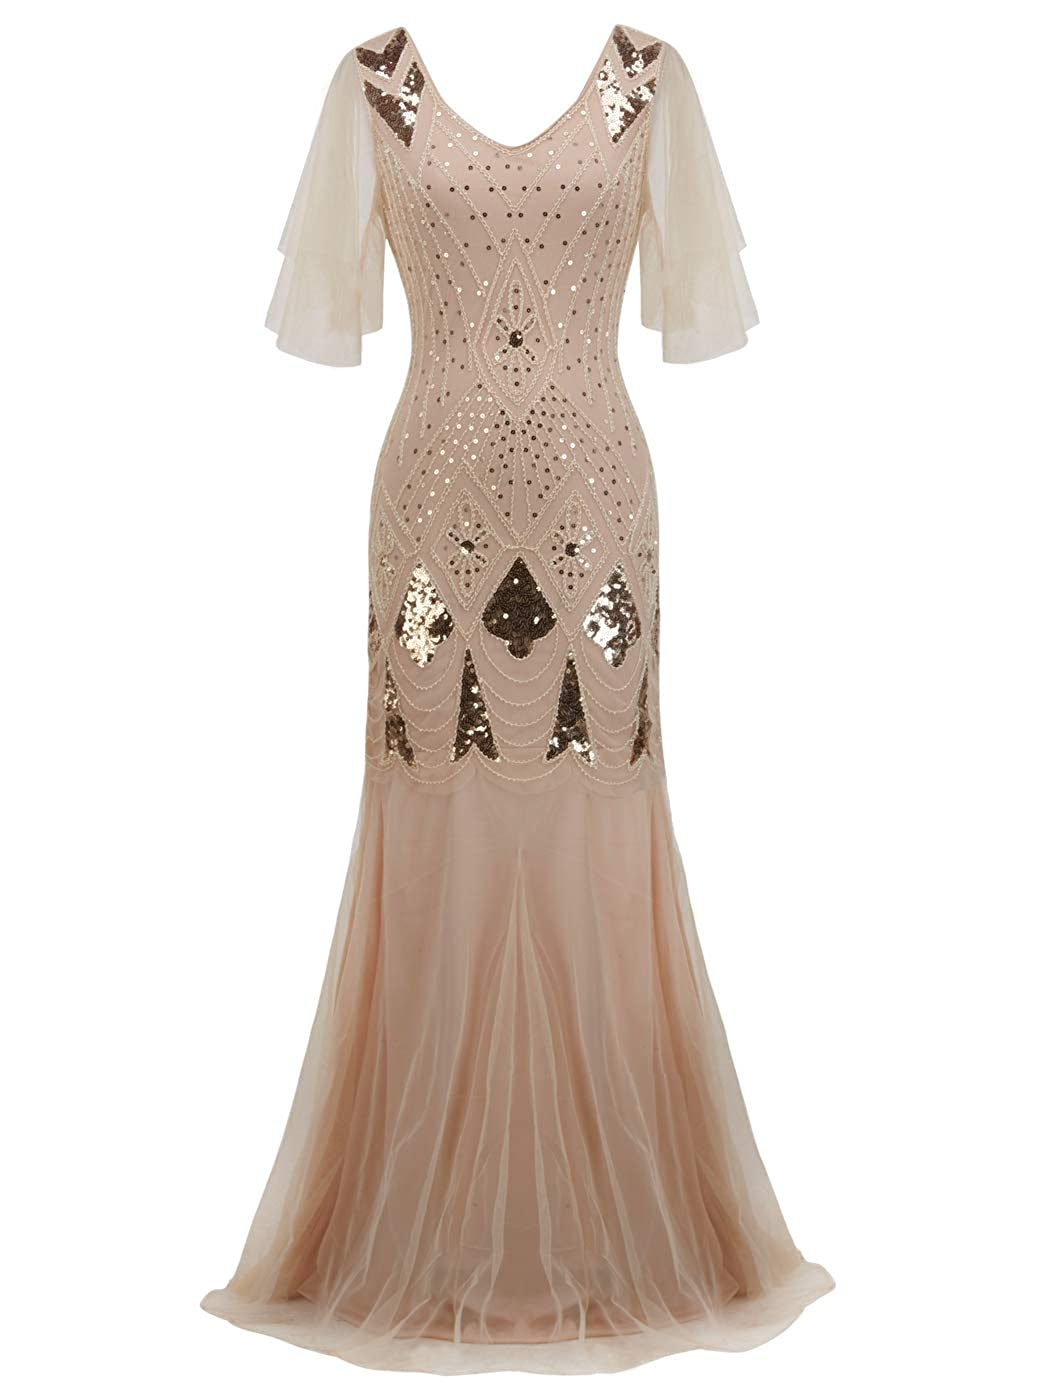 023champagne gold FAIRY COUPLE 1920s FloorLength VBack Sequined Embellished Prom Evening Dress D20S004